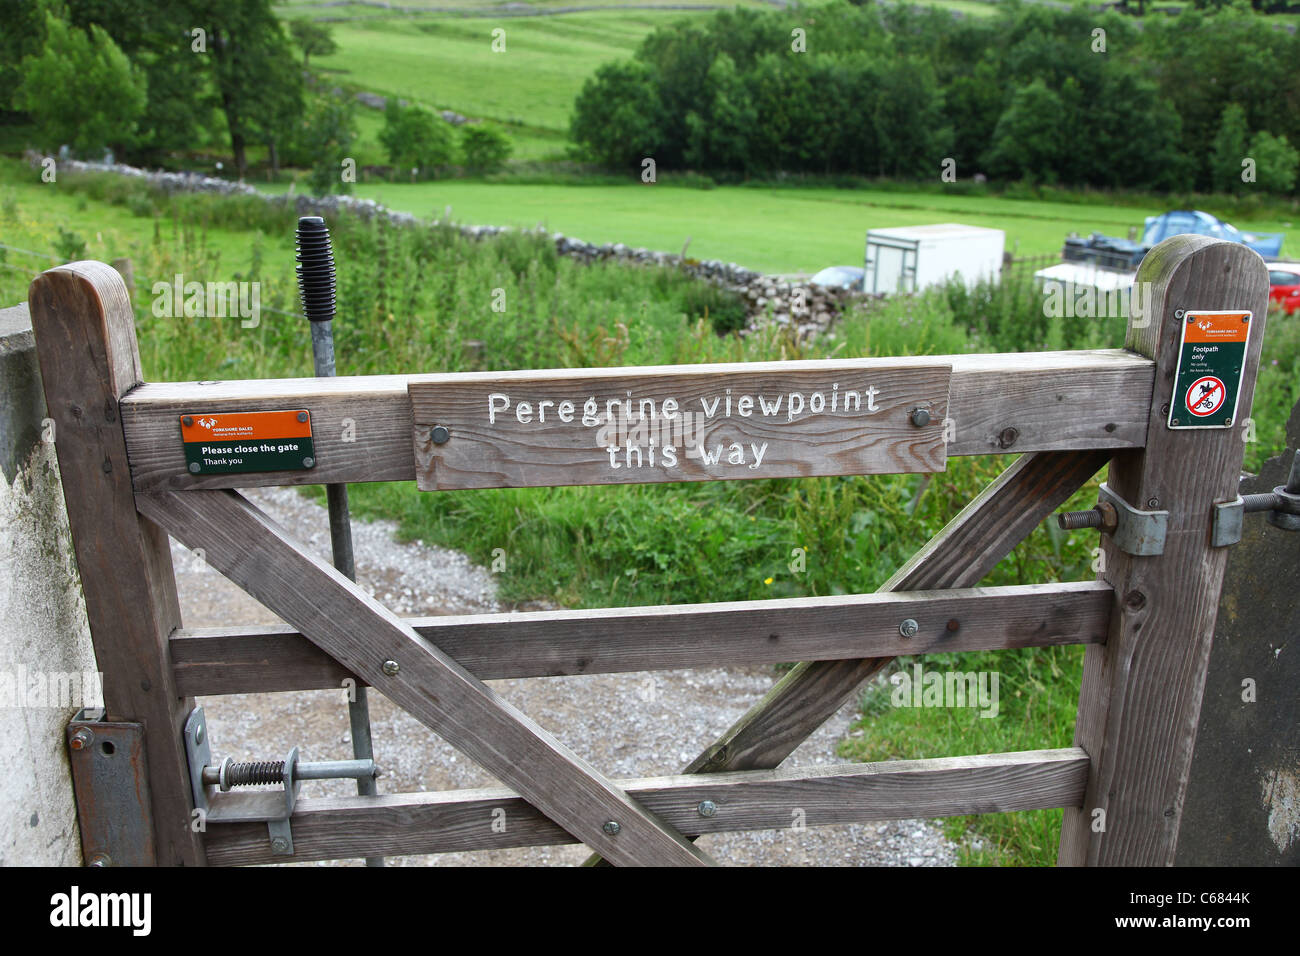 Peregrine viewpoint sign on a gate at Malham Cove, Yorkshire, Yorkshire Dales National Park, England, UK - Stock Image